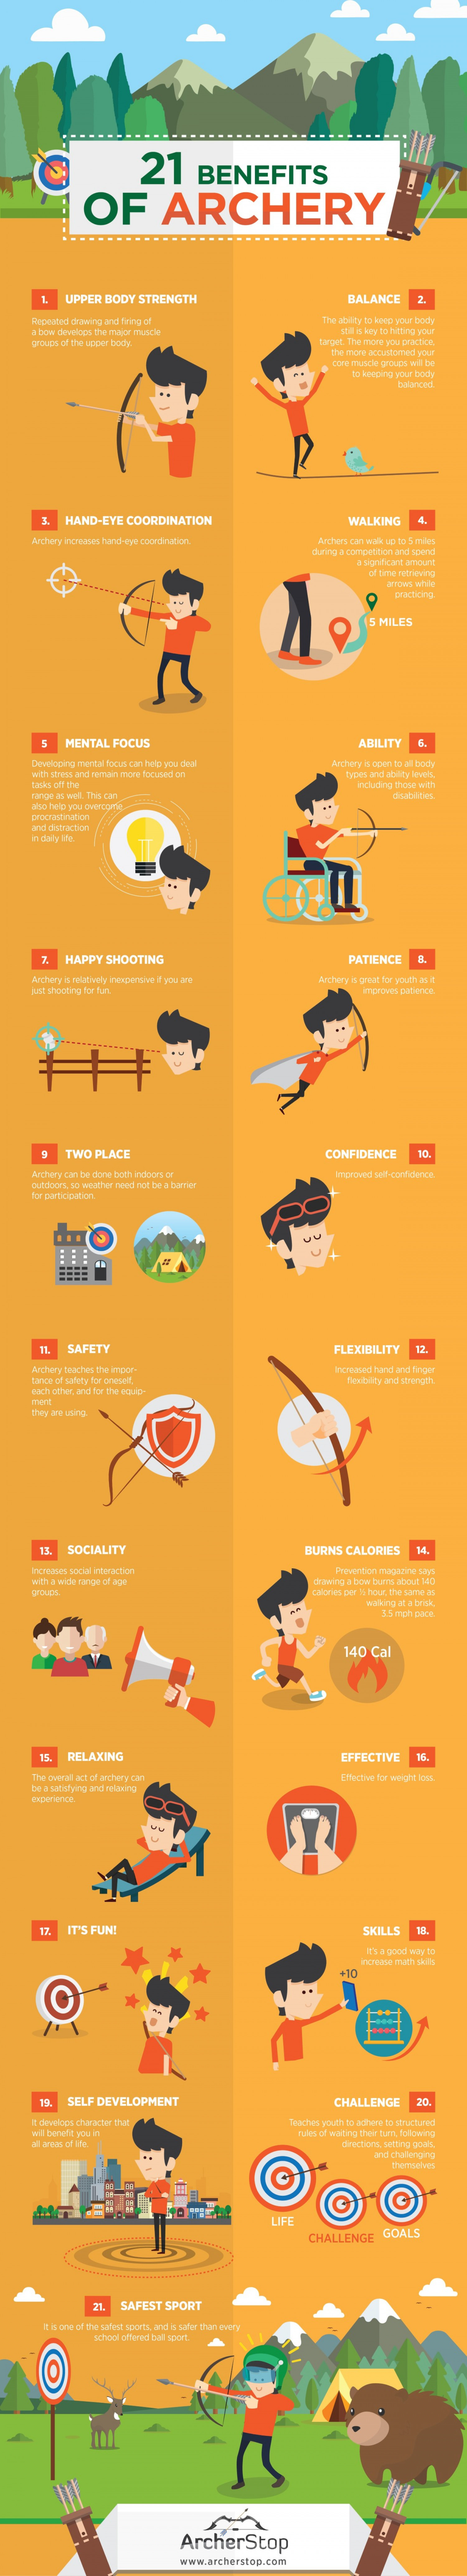 21 Benefits of Archery Infographic